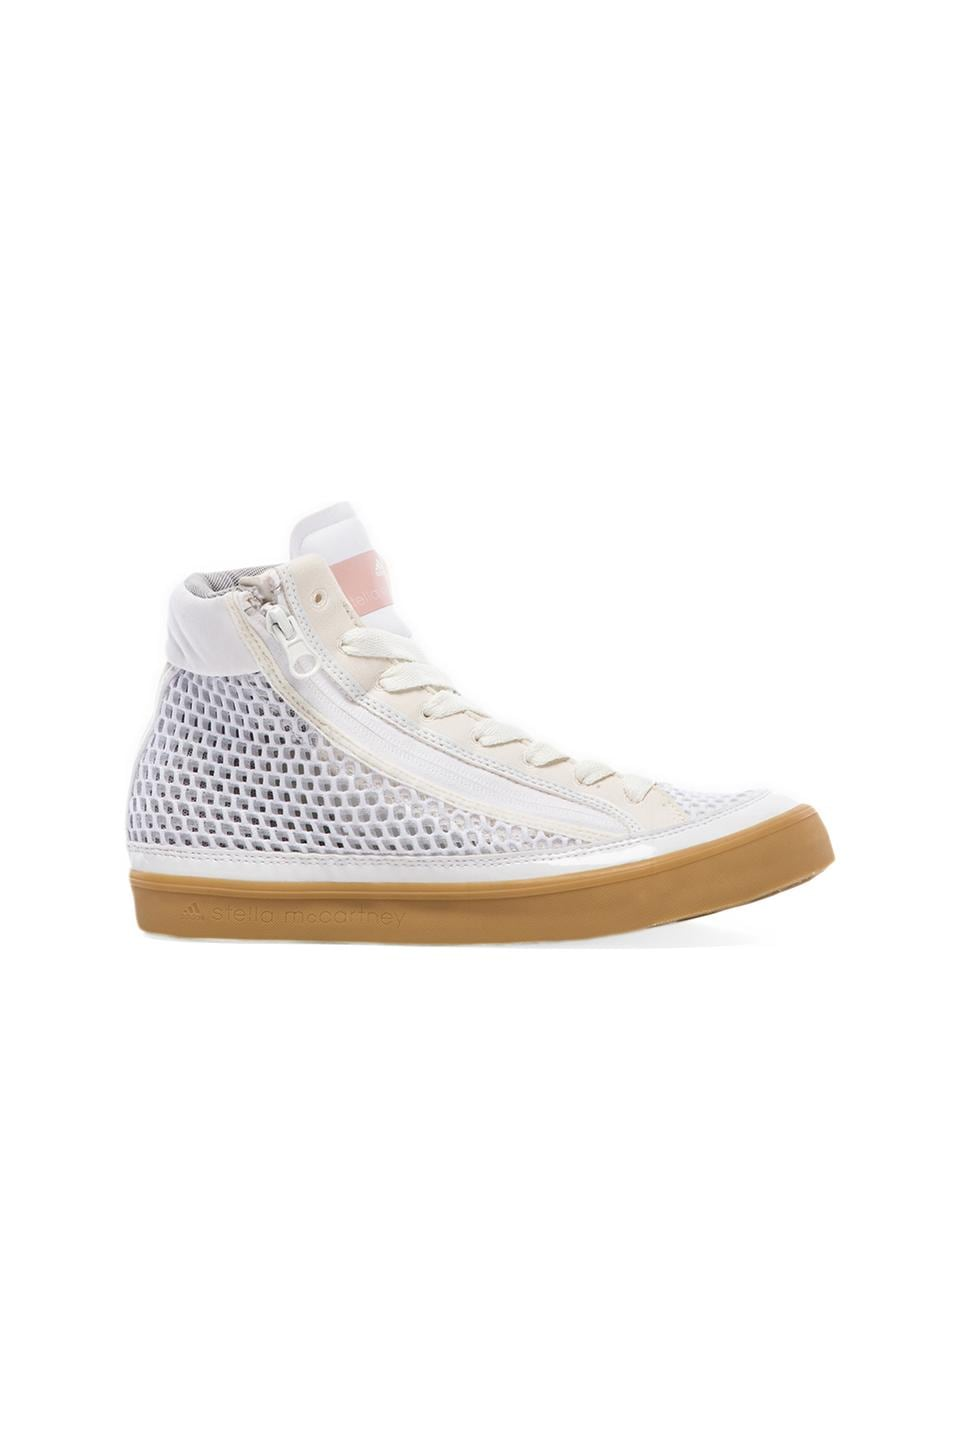 adidas by Stella McCartney Casual Sneaker in White, Universe & Pearl Sand